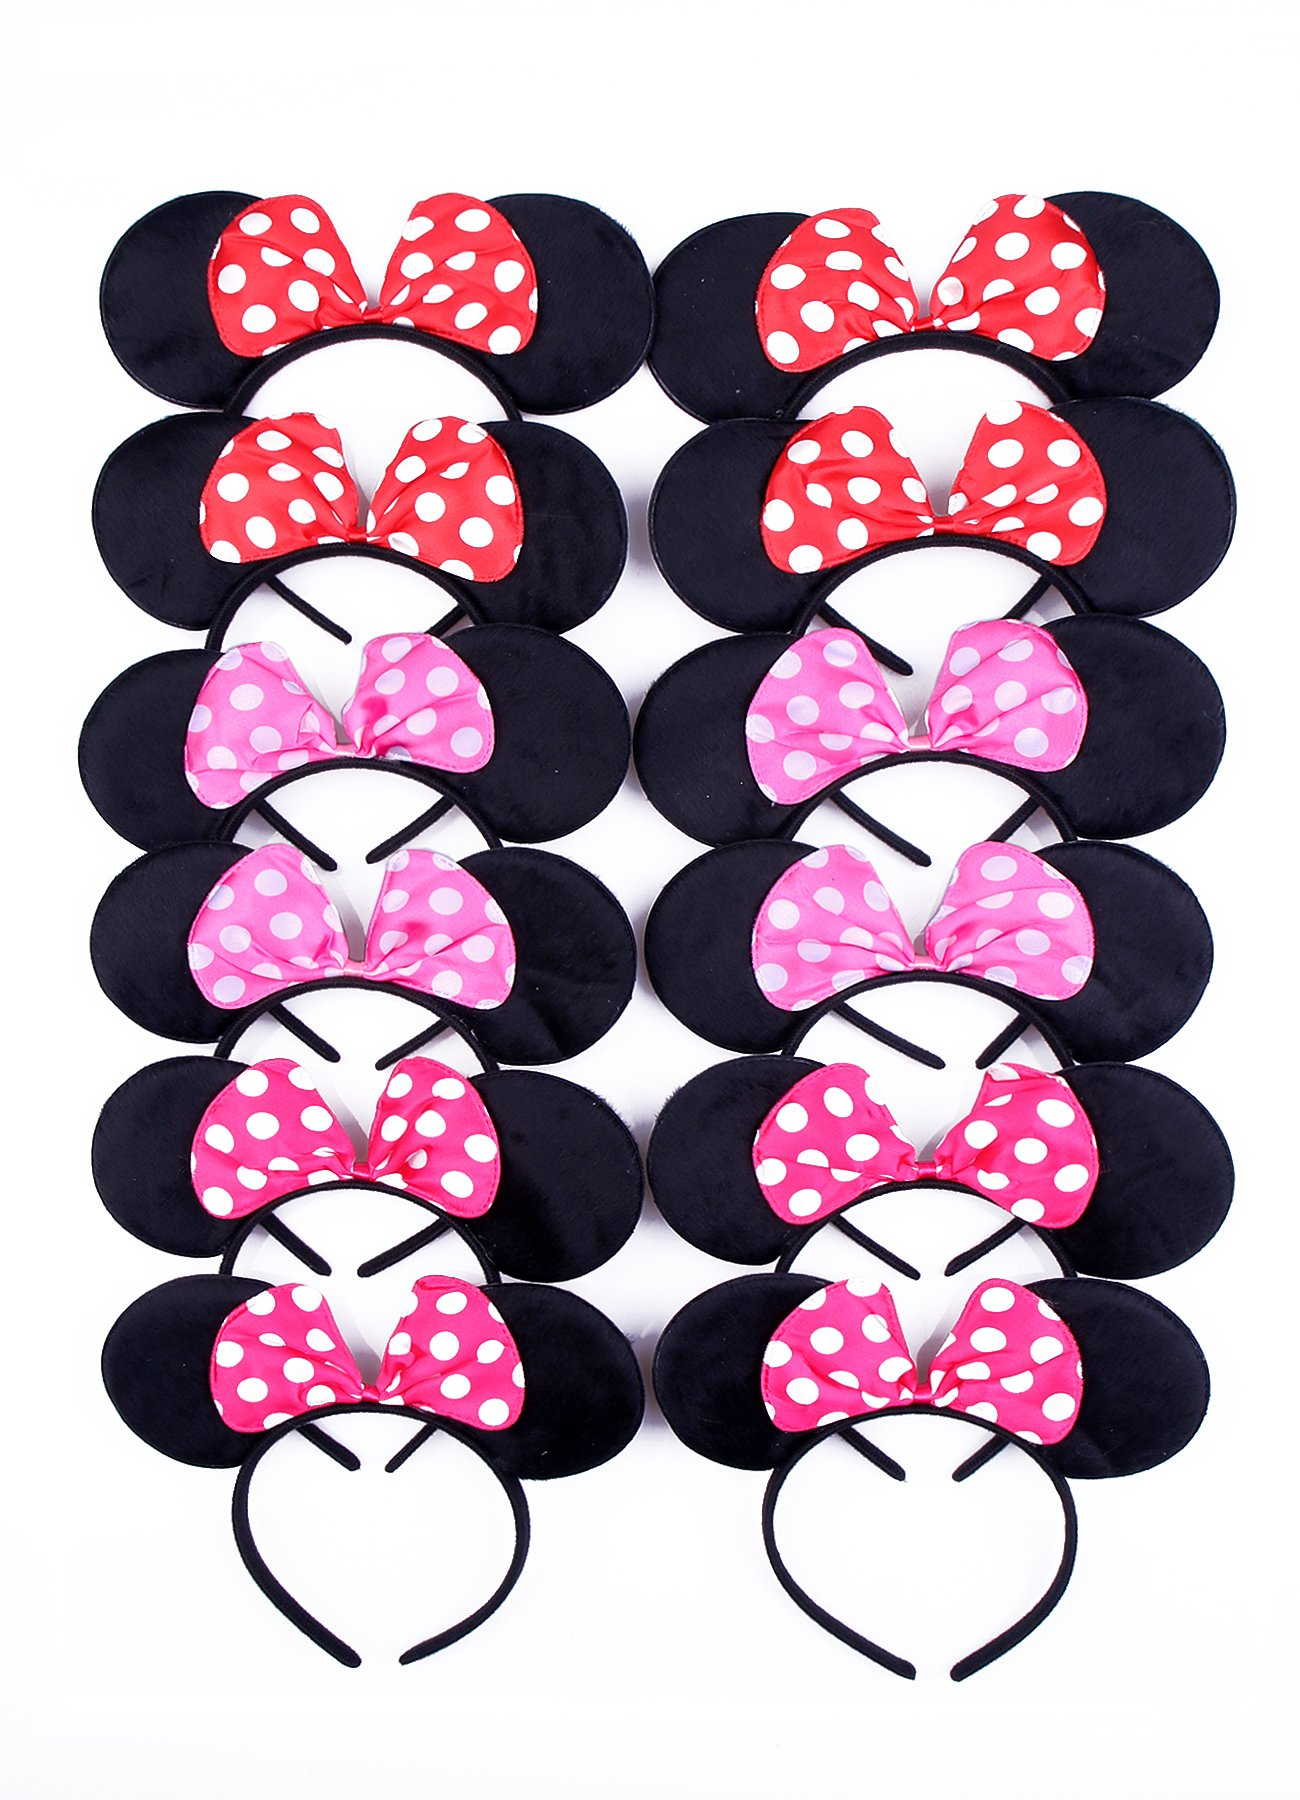 RufnTop Mickey and Minnie Mouse Polka Pink Bow Ears Headband(Pink Mix Set of 12)